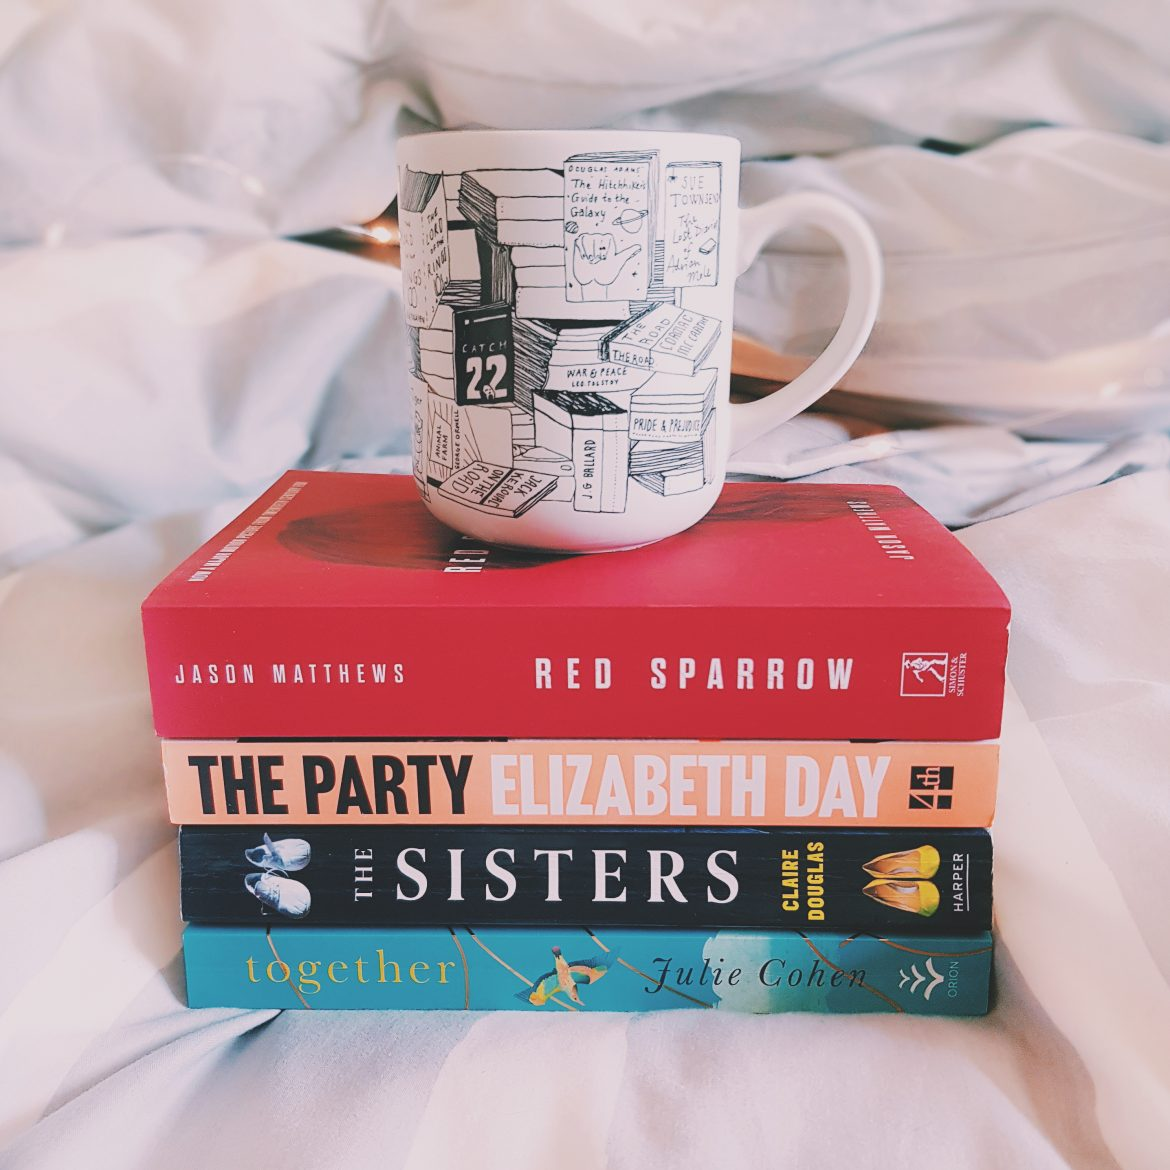 Selection of books and a cup of tea